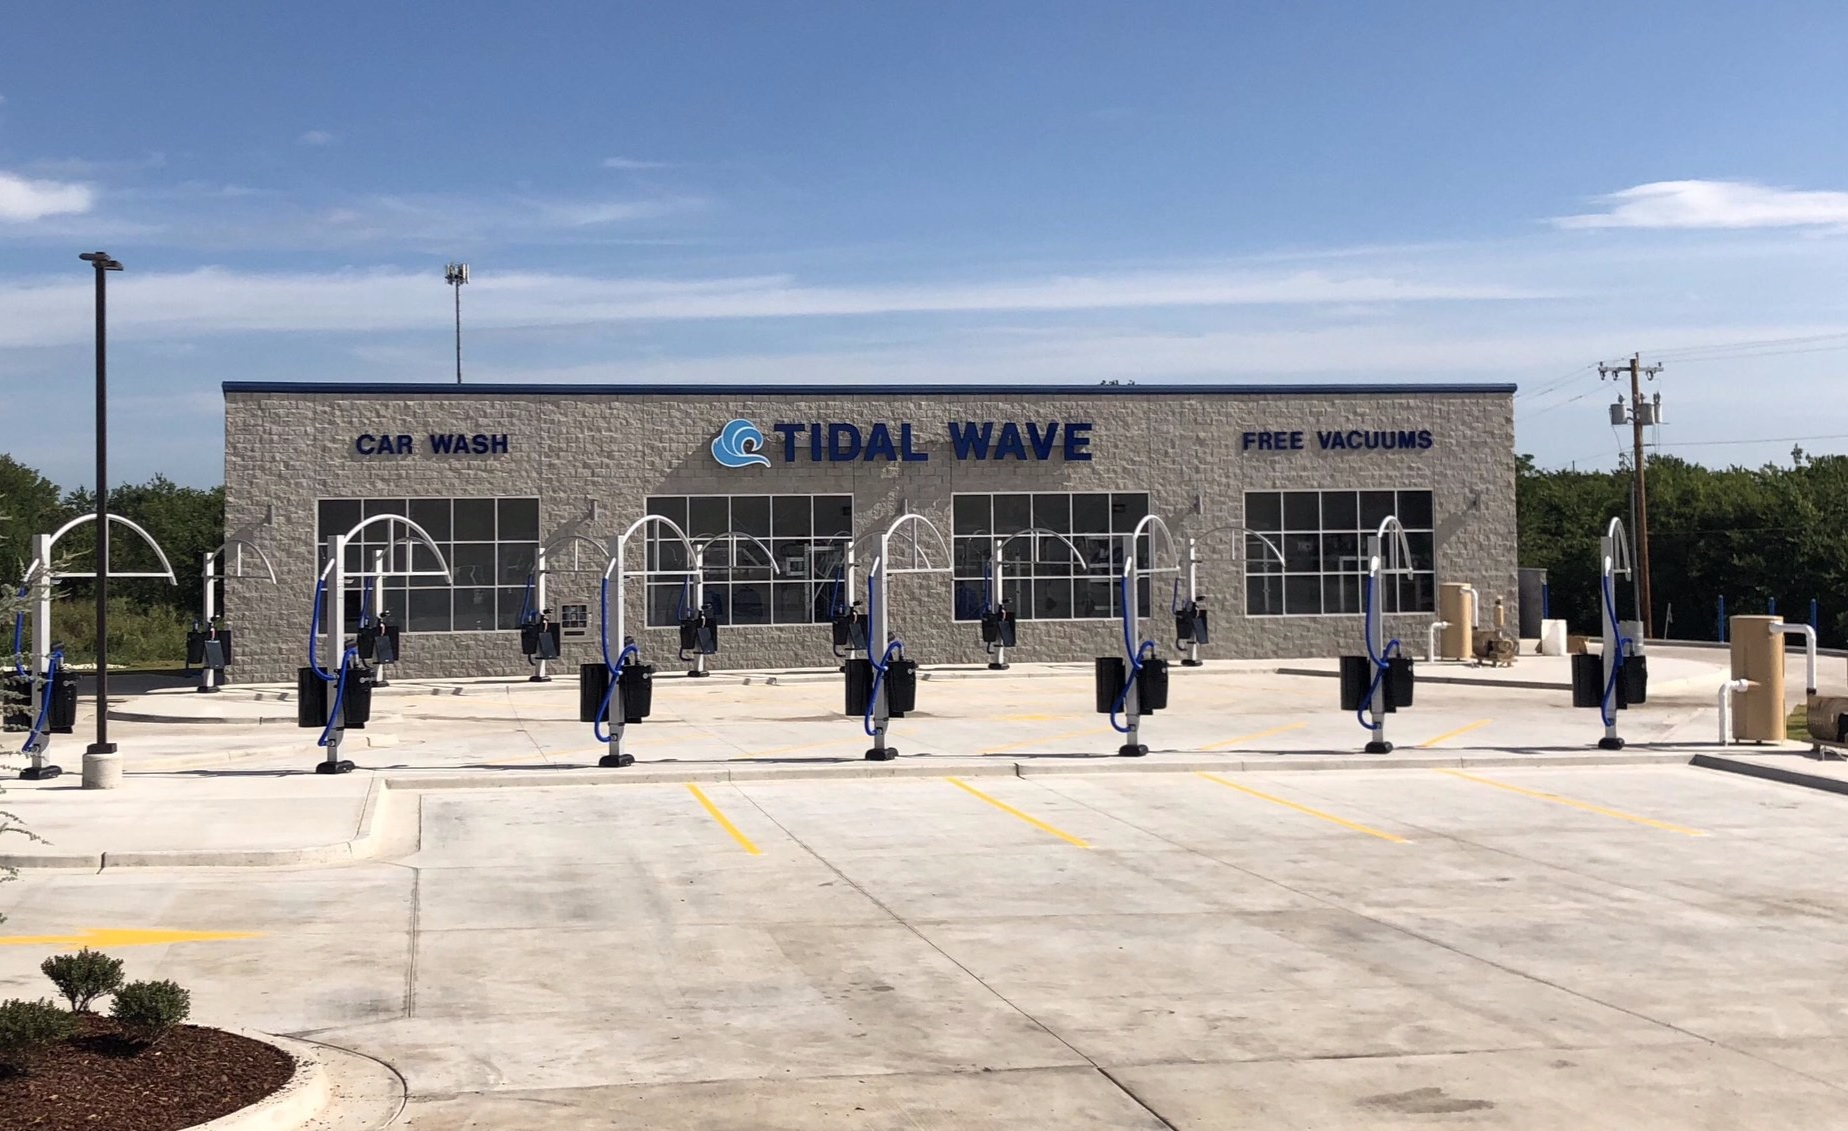 Tidal Wave Car Wash Muskogee, Oklahoma